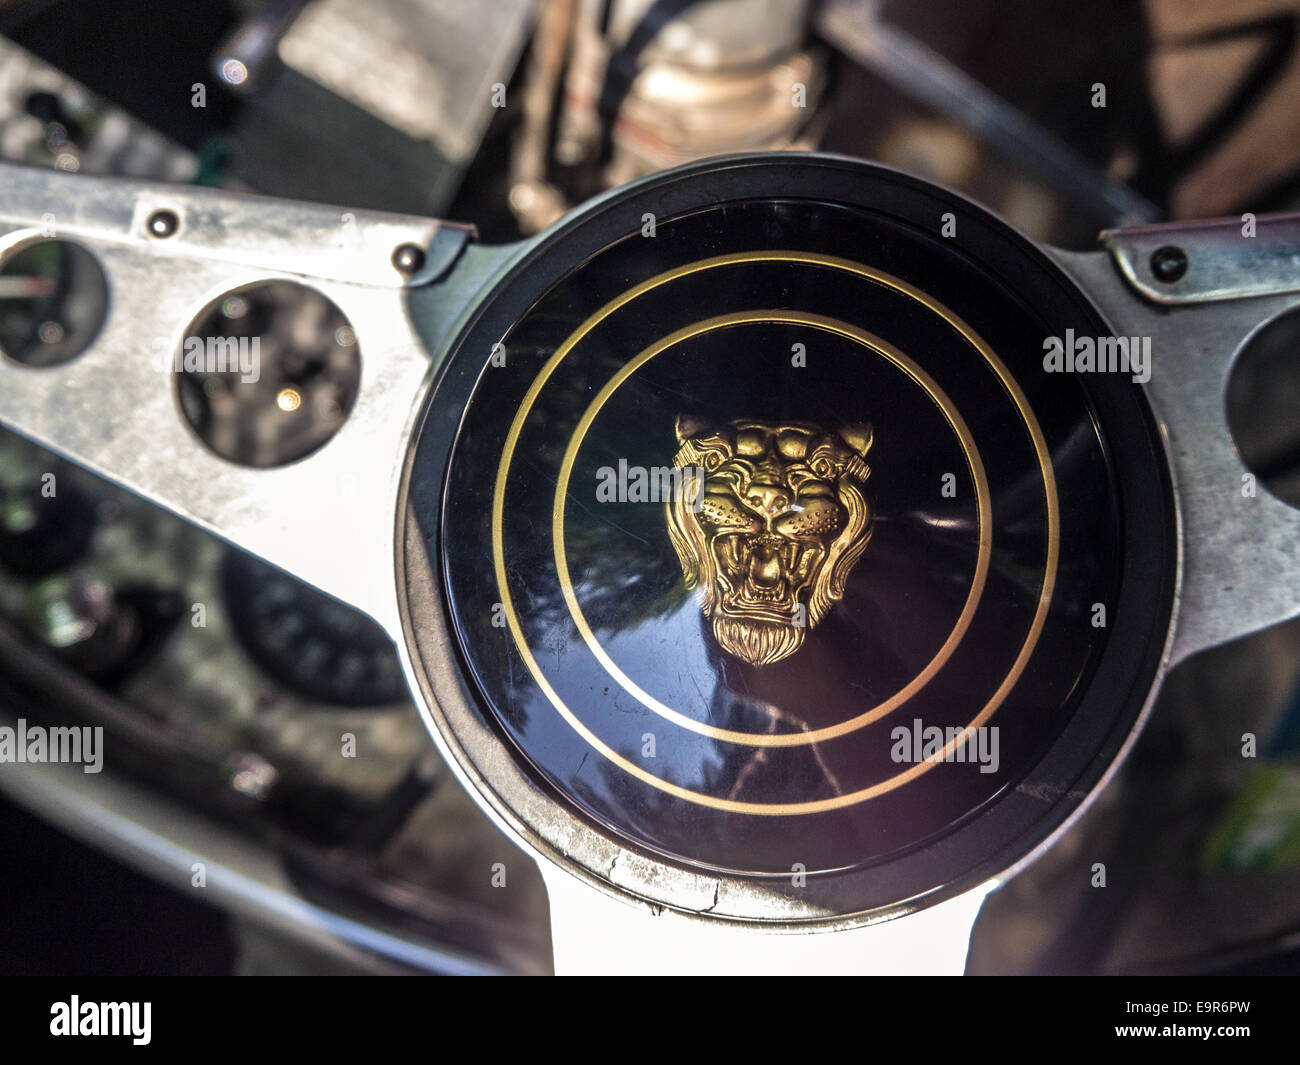 A black jaguar sports car stock photos a black jaguar sports car a classic jaguar logo on a racing car steering wheel stock image biocorpaavc Gallery